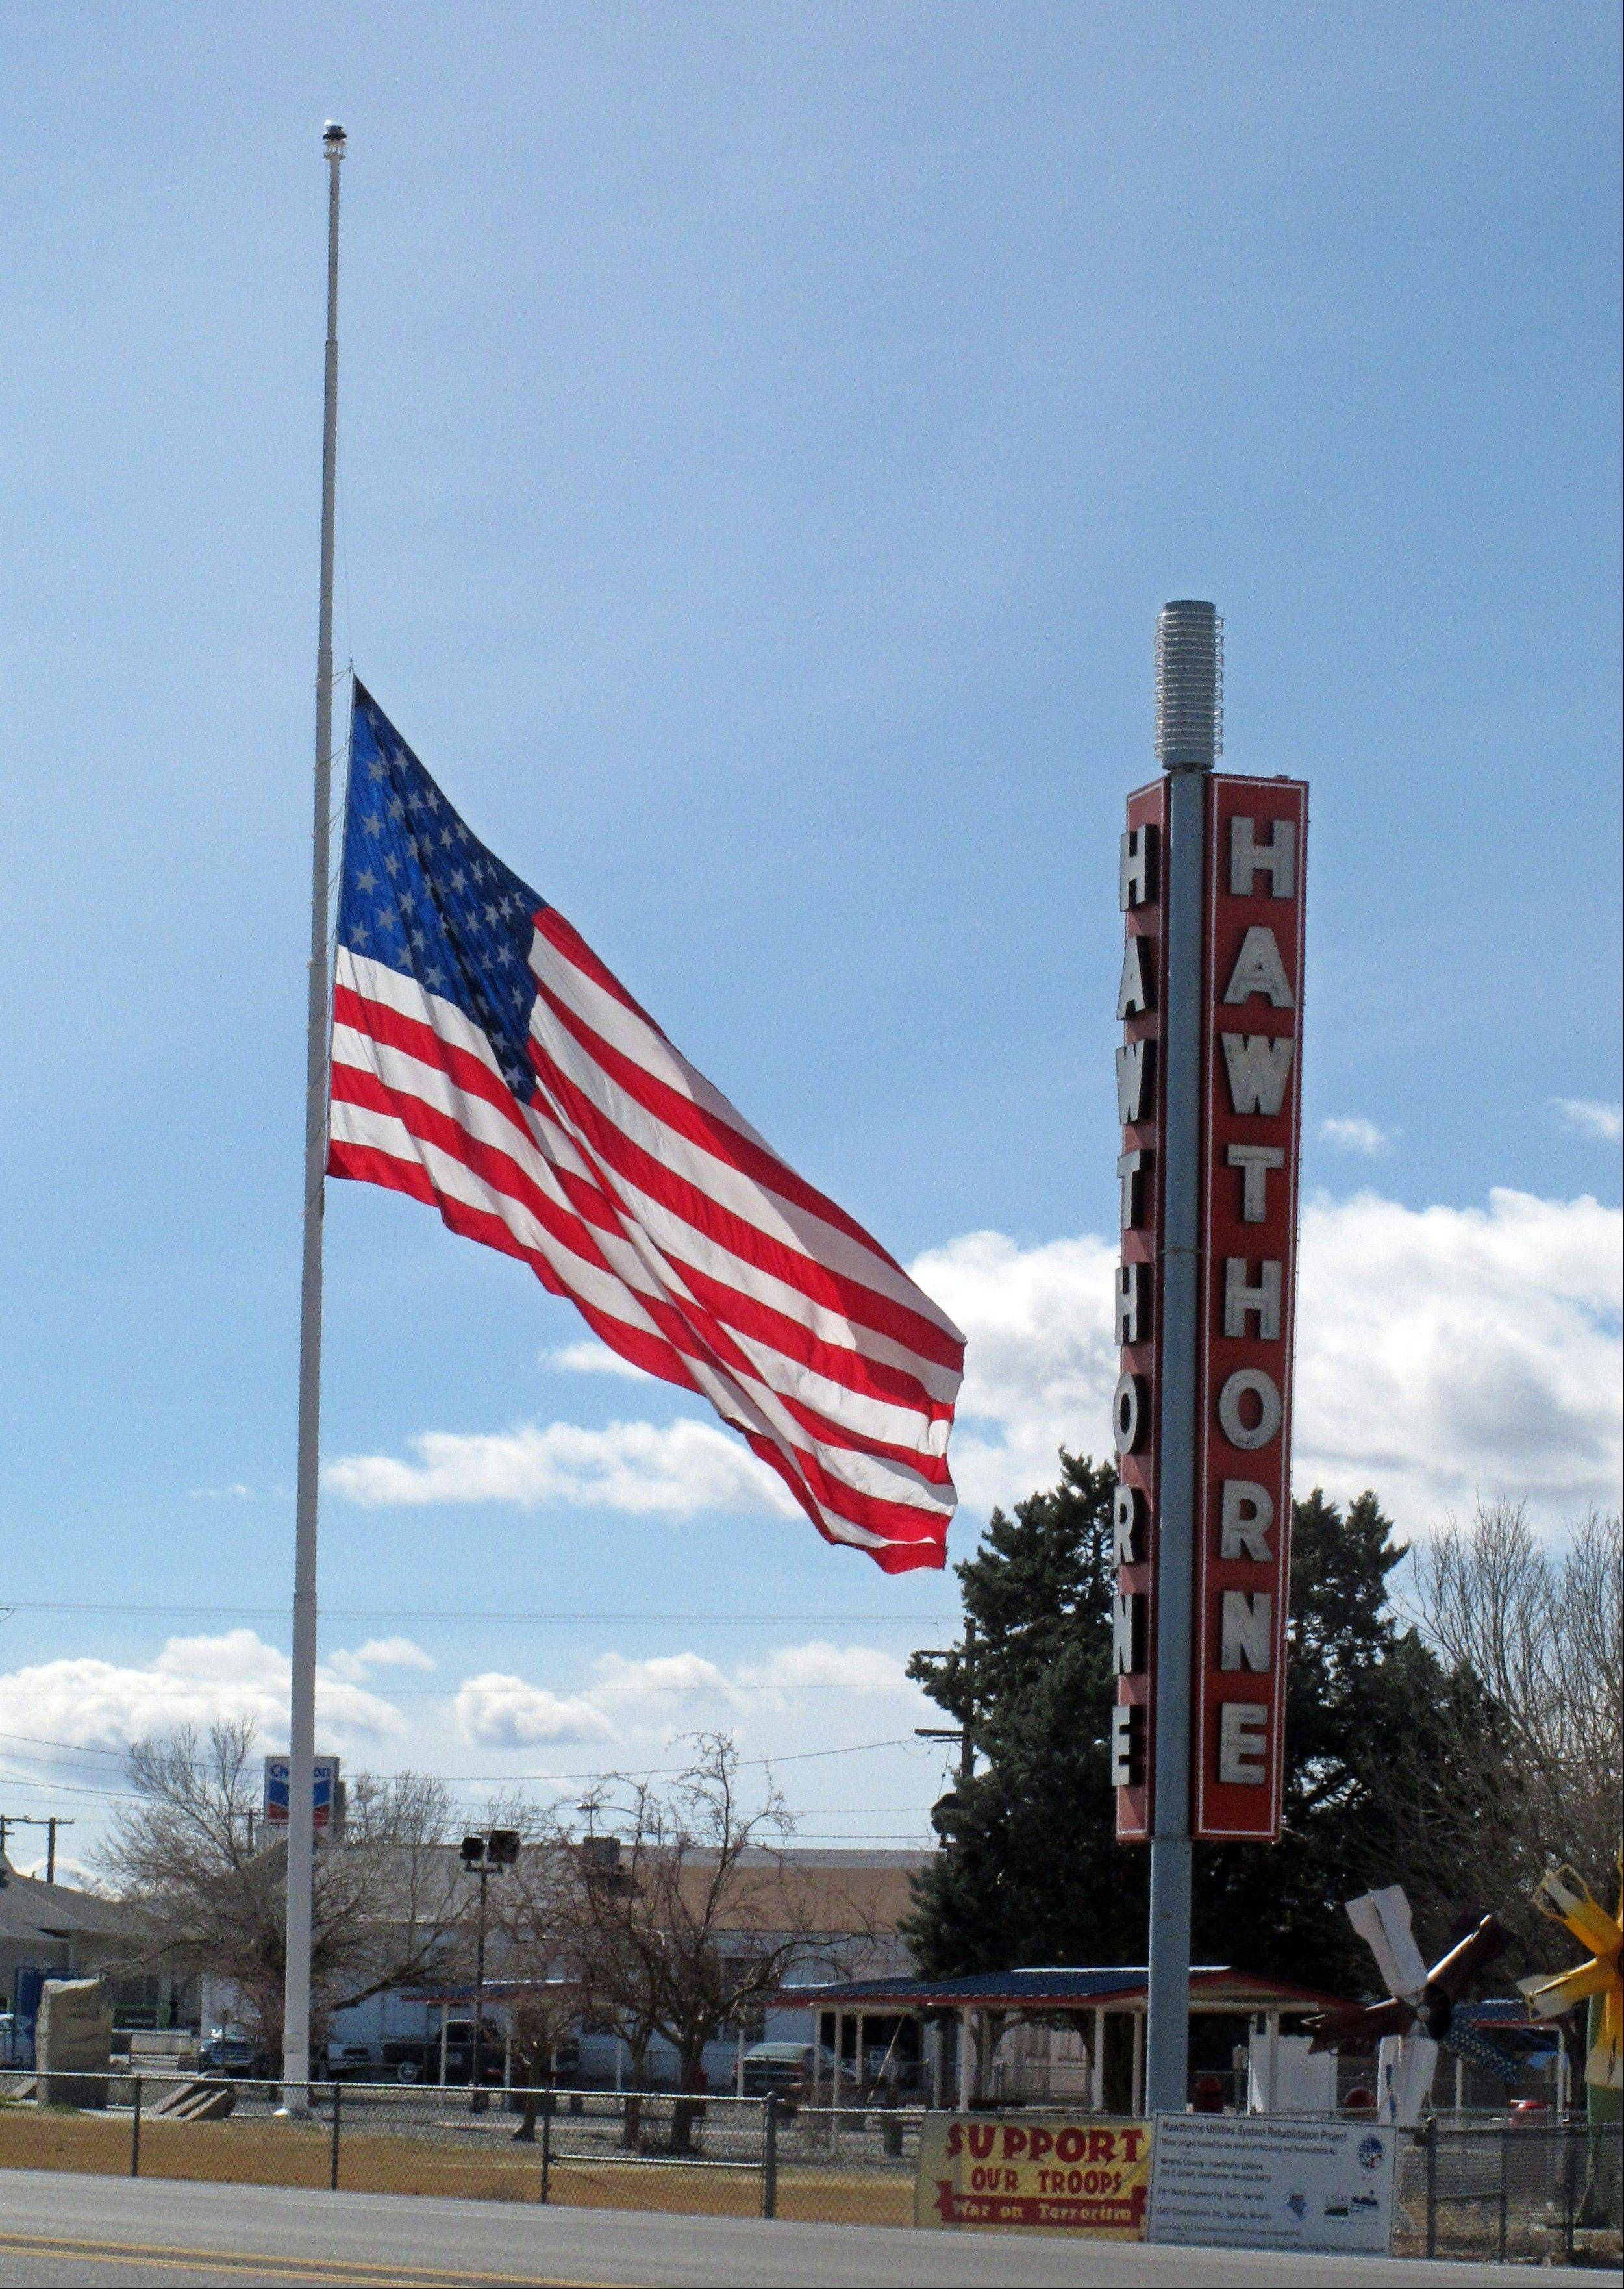 An American flag waves at half staff in the town of Hawthorne near the Hawthorne Army Depot on Tuesday, March 19, 2013, where seven Marines were killed and several others seriously injured in a training accident Monday night, about 150 miles southeast of Reno in Nevada's high desert.